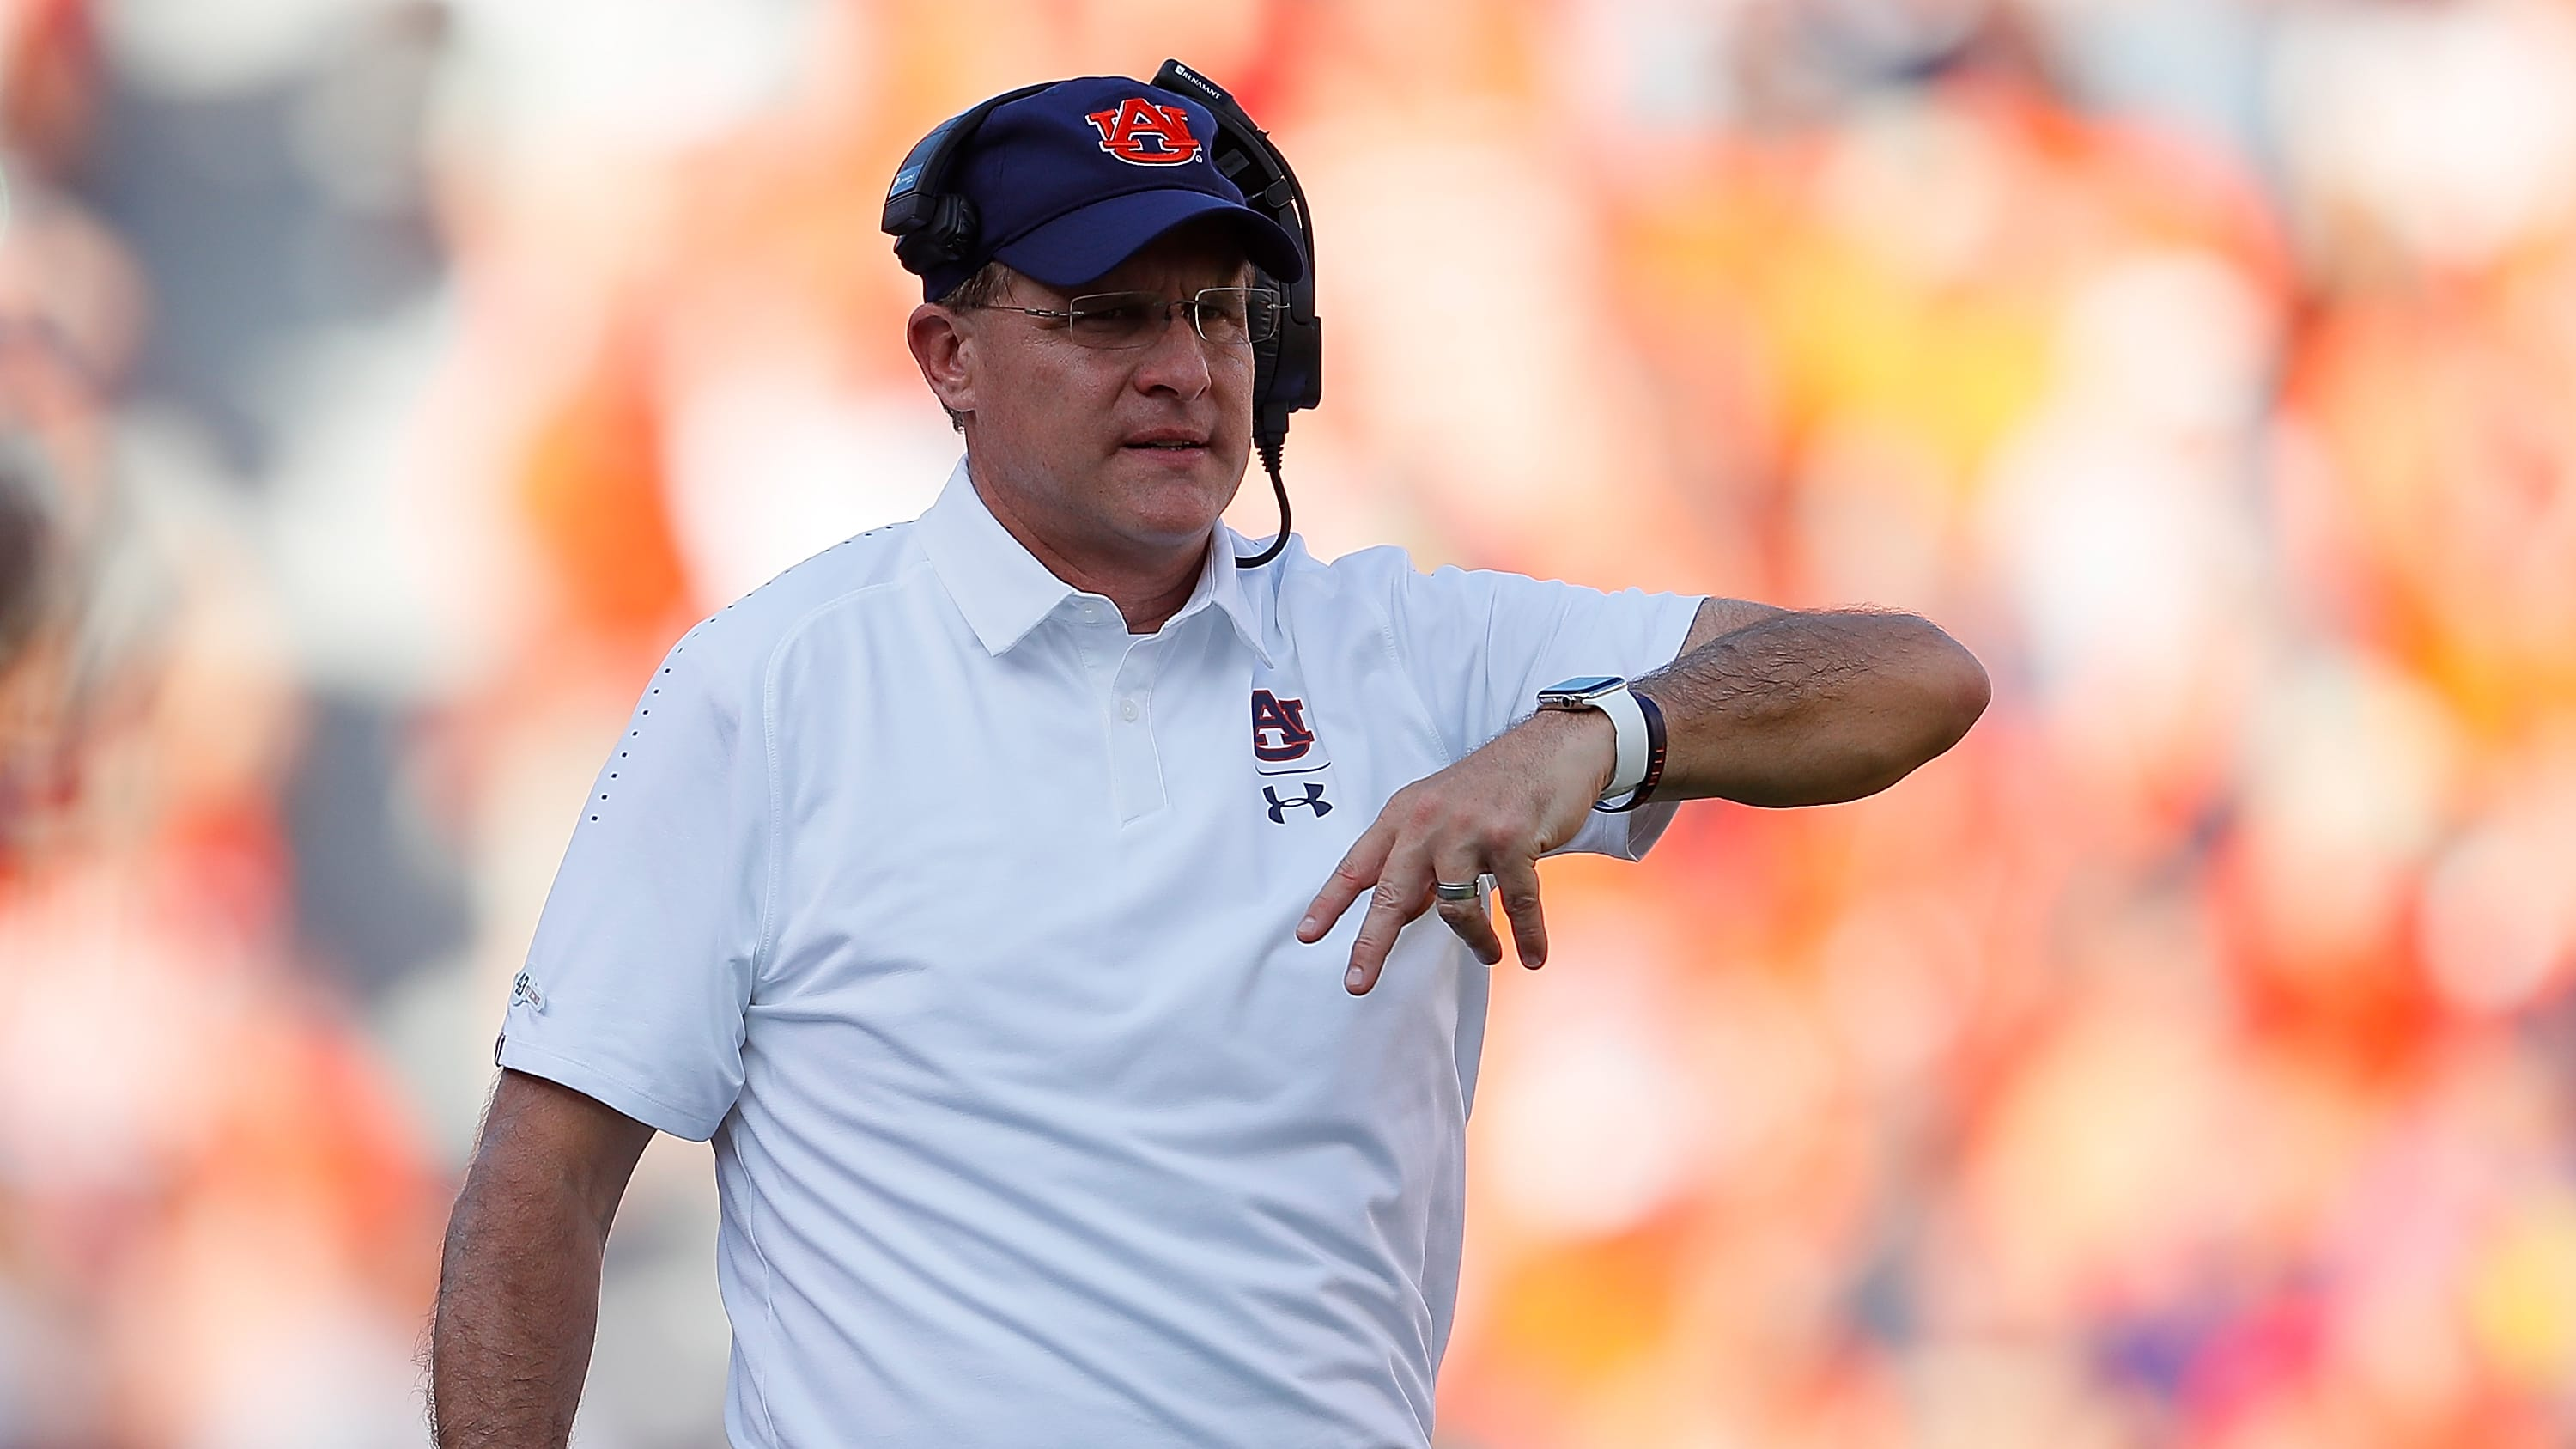 AUBURN, AL - SEPTEMBER 15:  Head coach Gus Malzahn of the Auburn Tigers looks on during the game against the LSU Tigers at Jordan-Hare Stadium on September 15, 2018 in Auburn, Alabama.  (Photo by Kevin C. Cox/Getty Images)